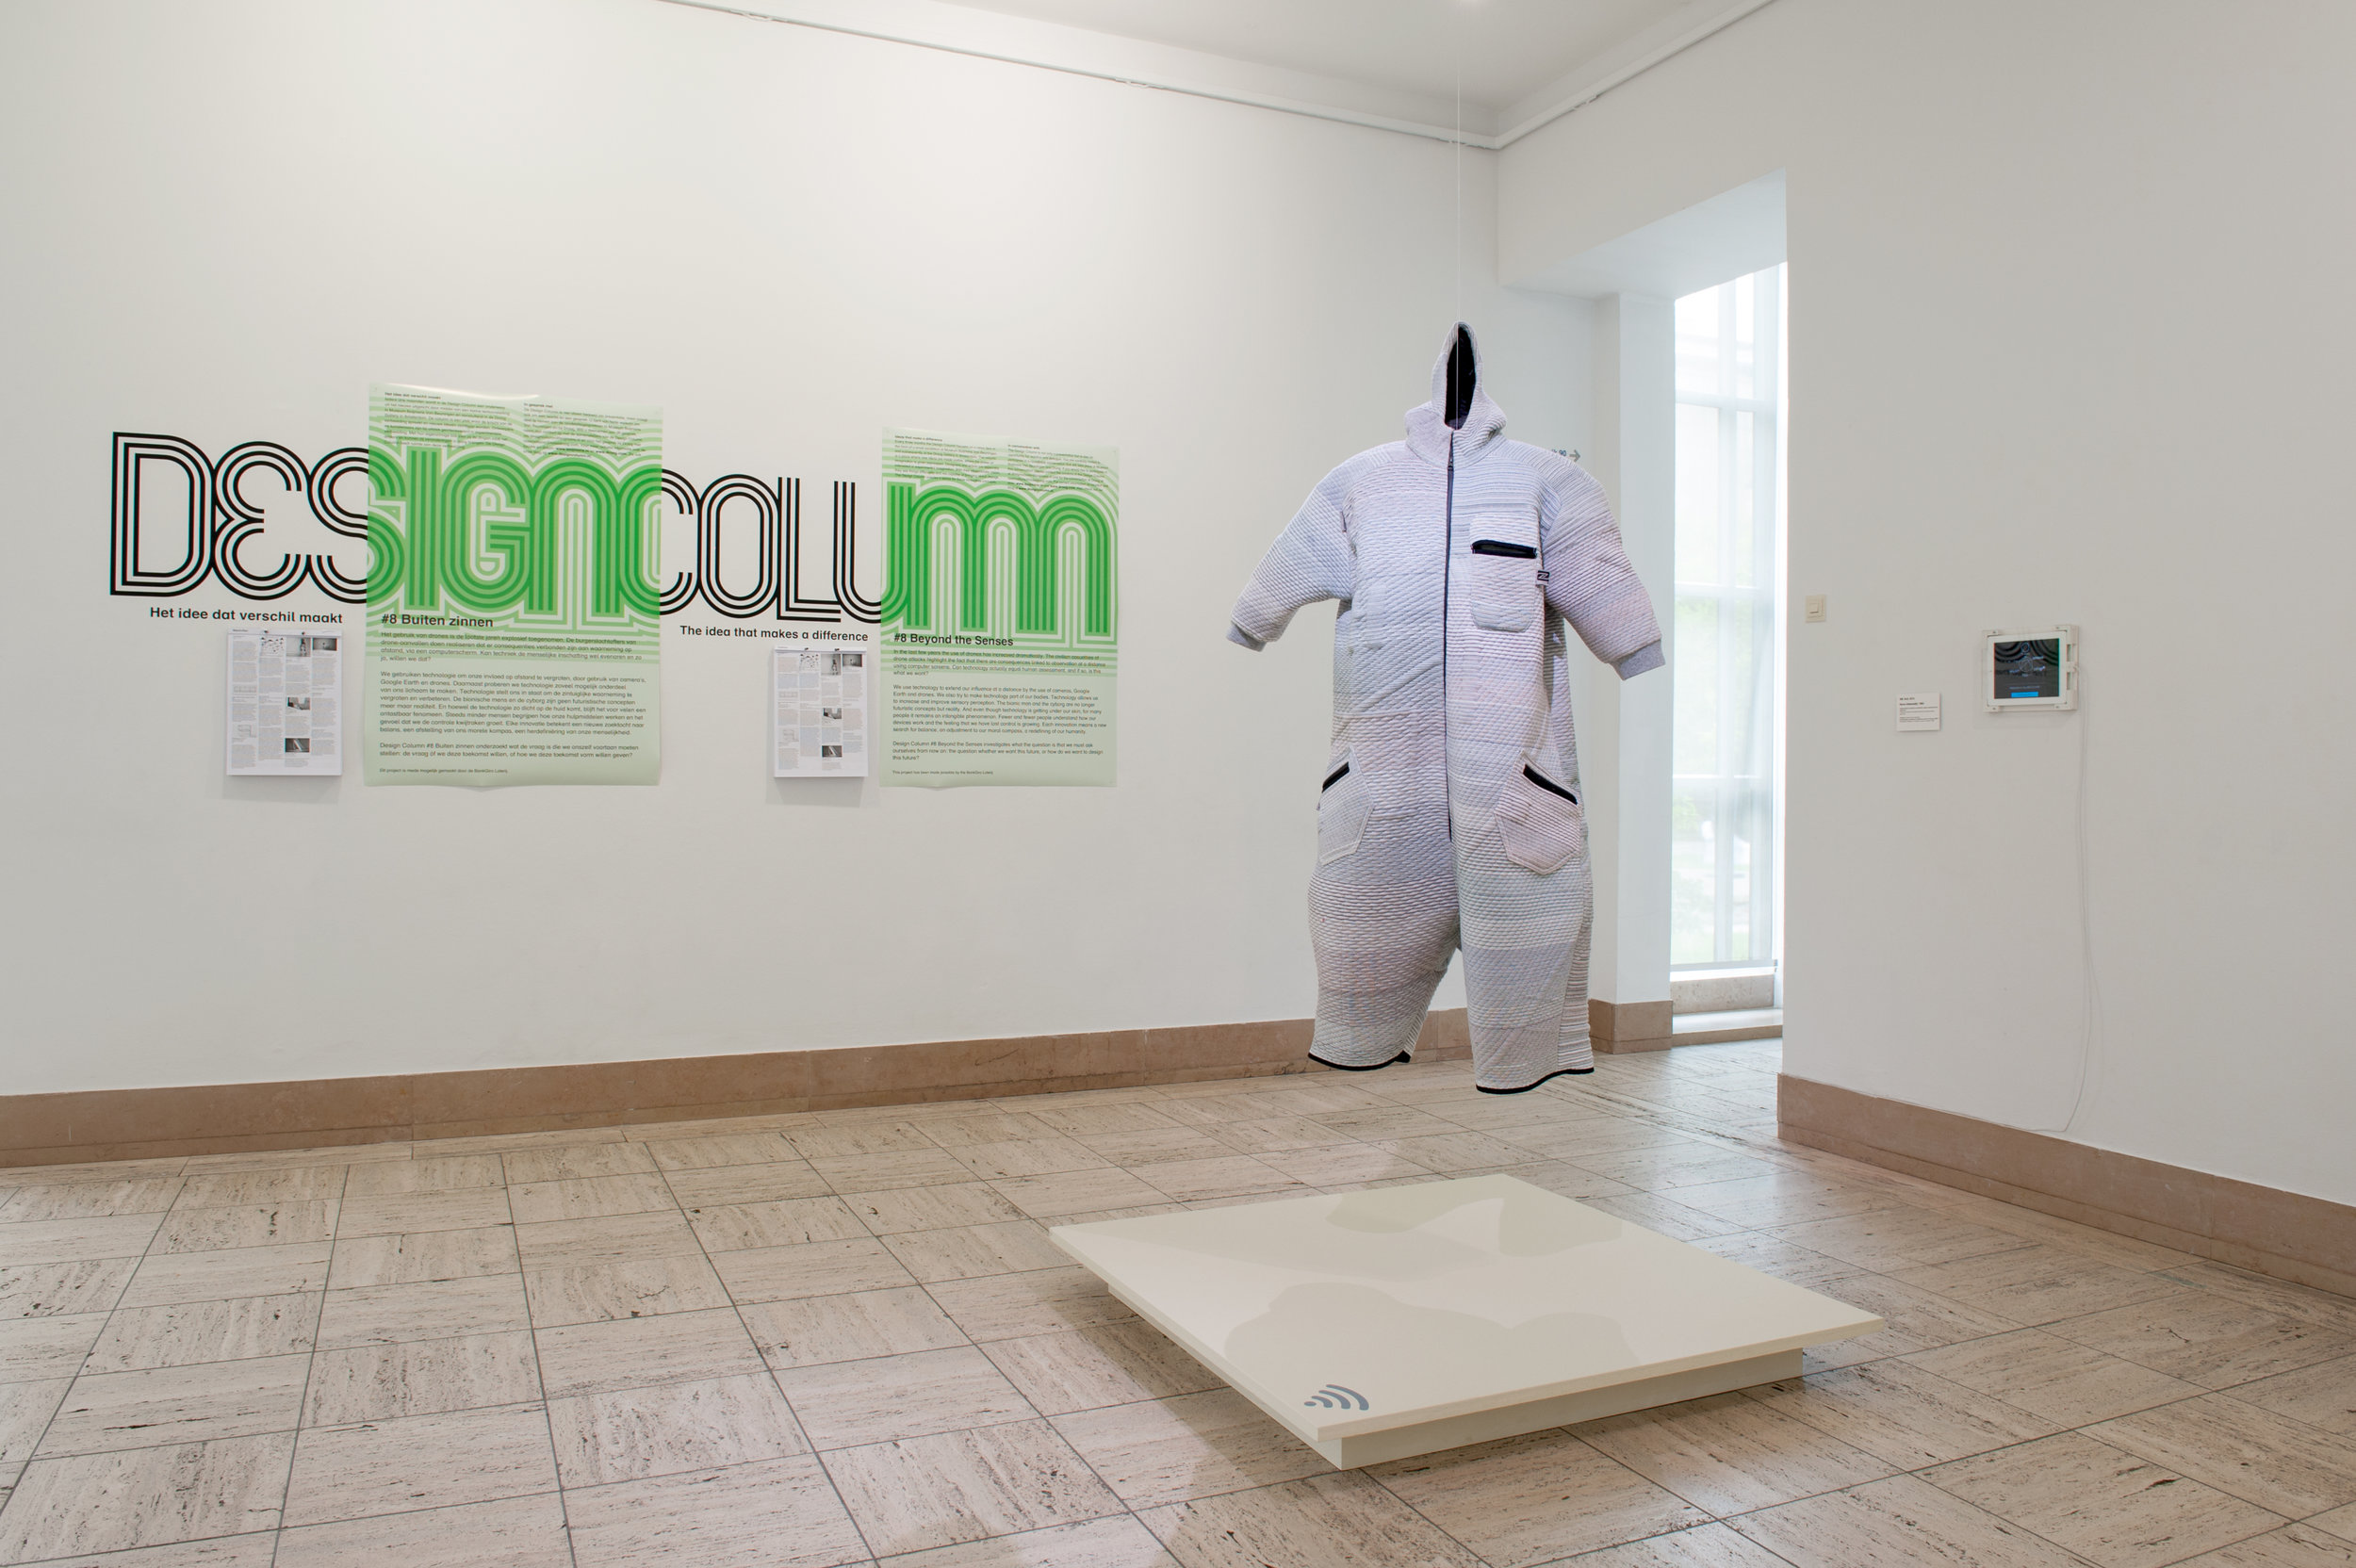 studio_colorado-boijmans_designcolumn_01